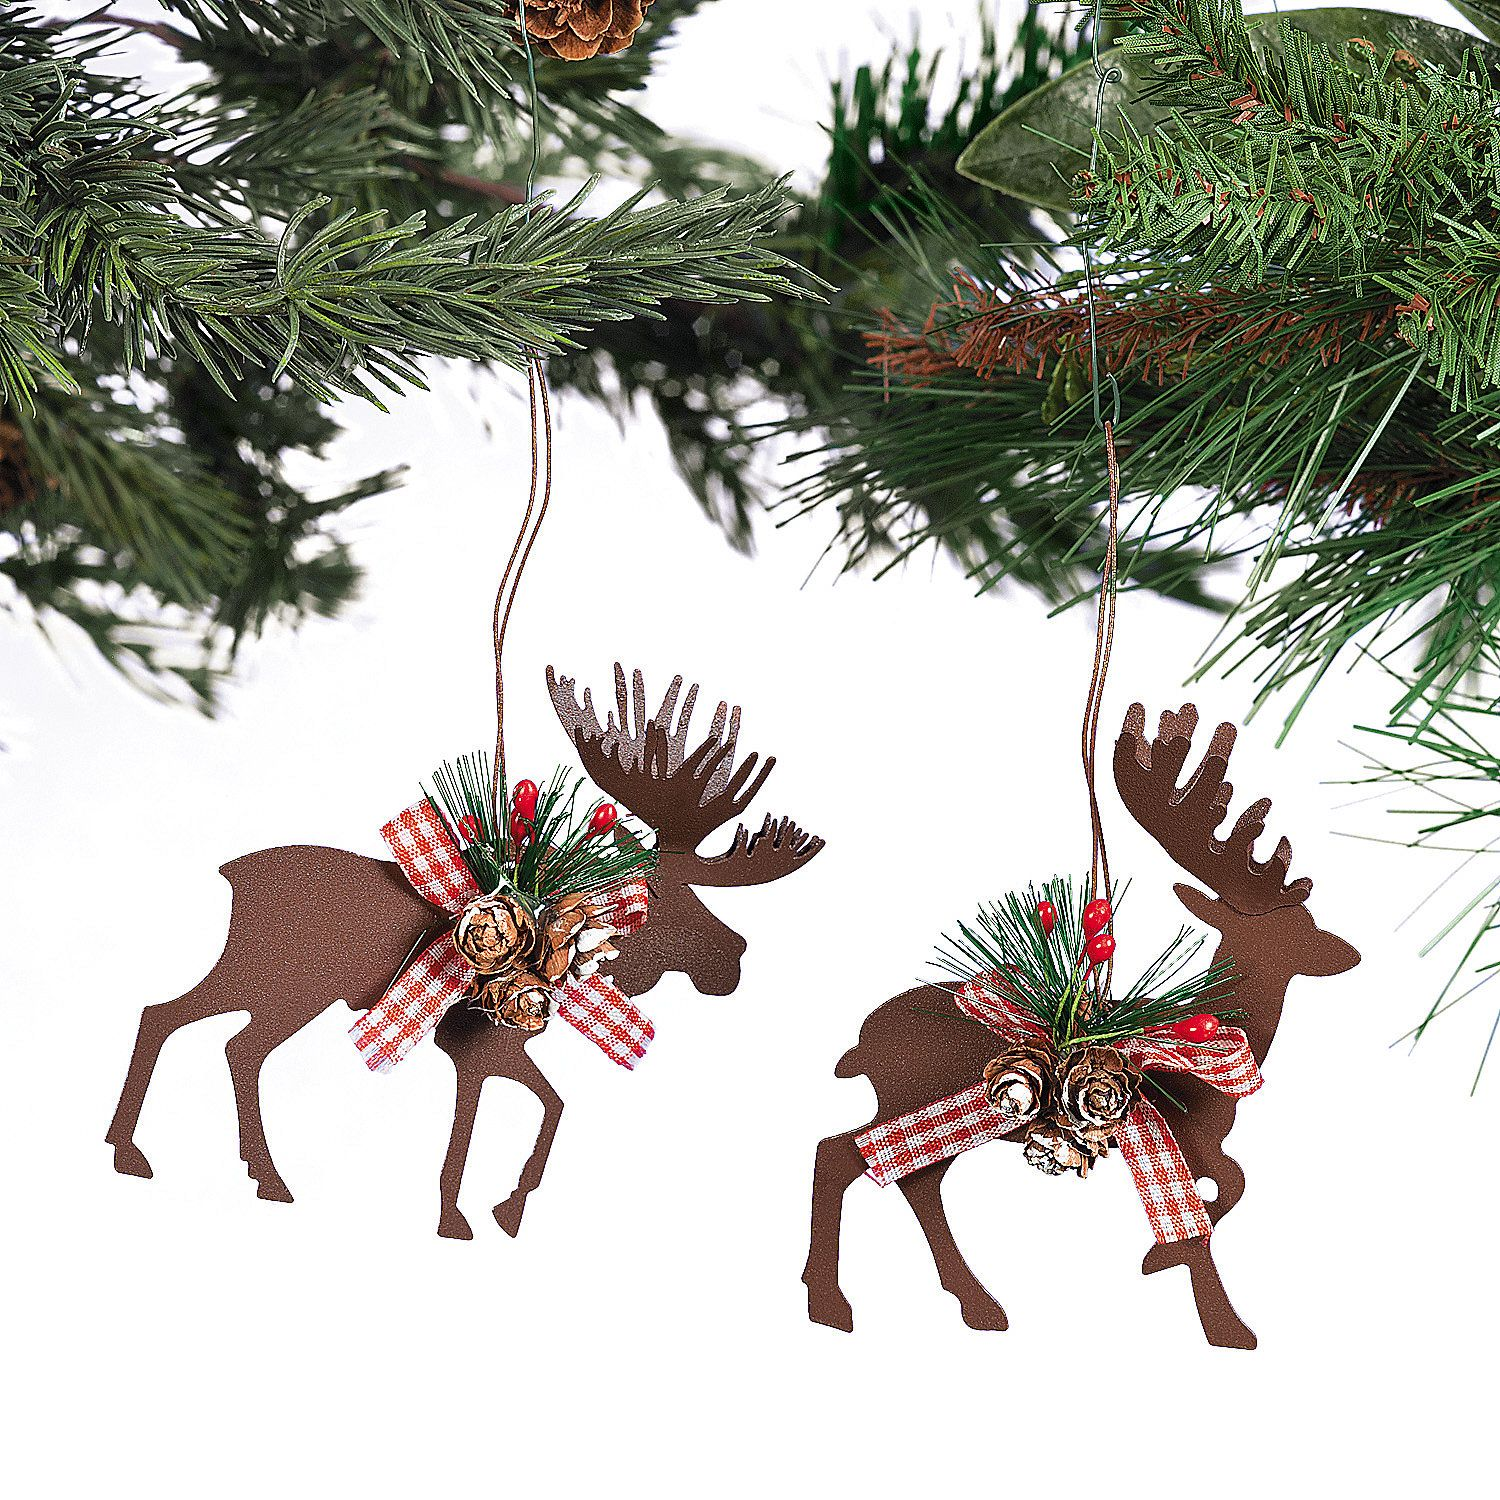 Holly christmas ornaments - Die Cut Moose Deer Christmas Ornaments Terrysvillage Com Decorated With Holly Miniature